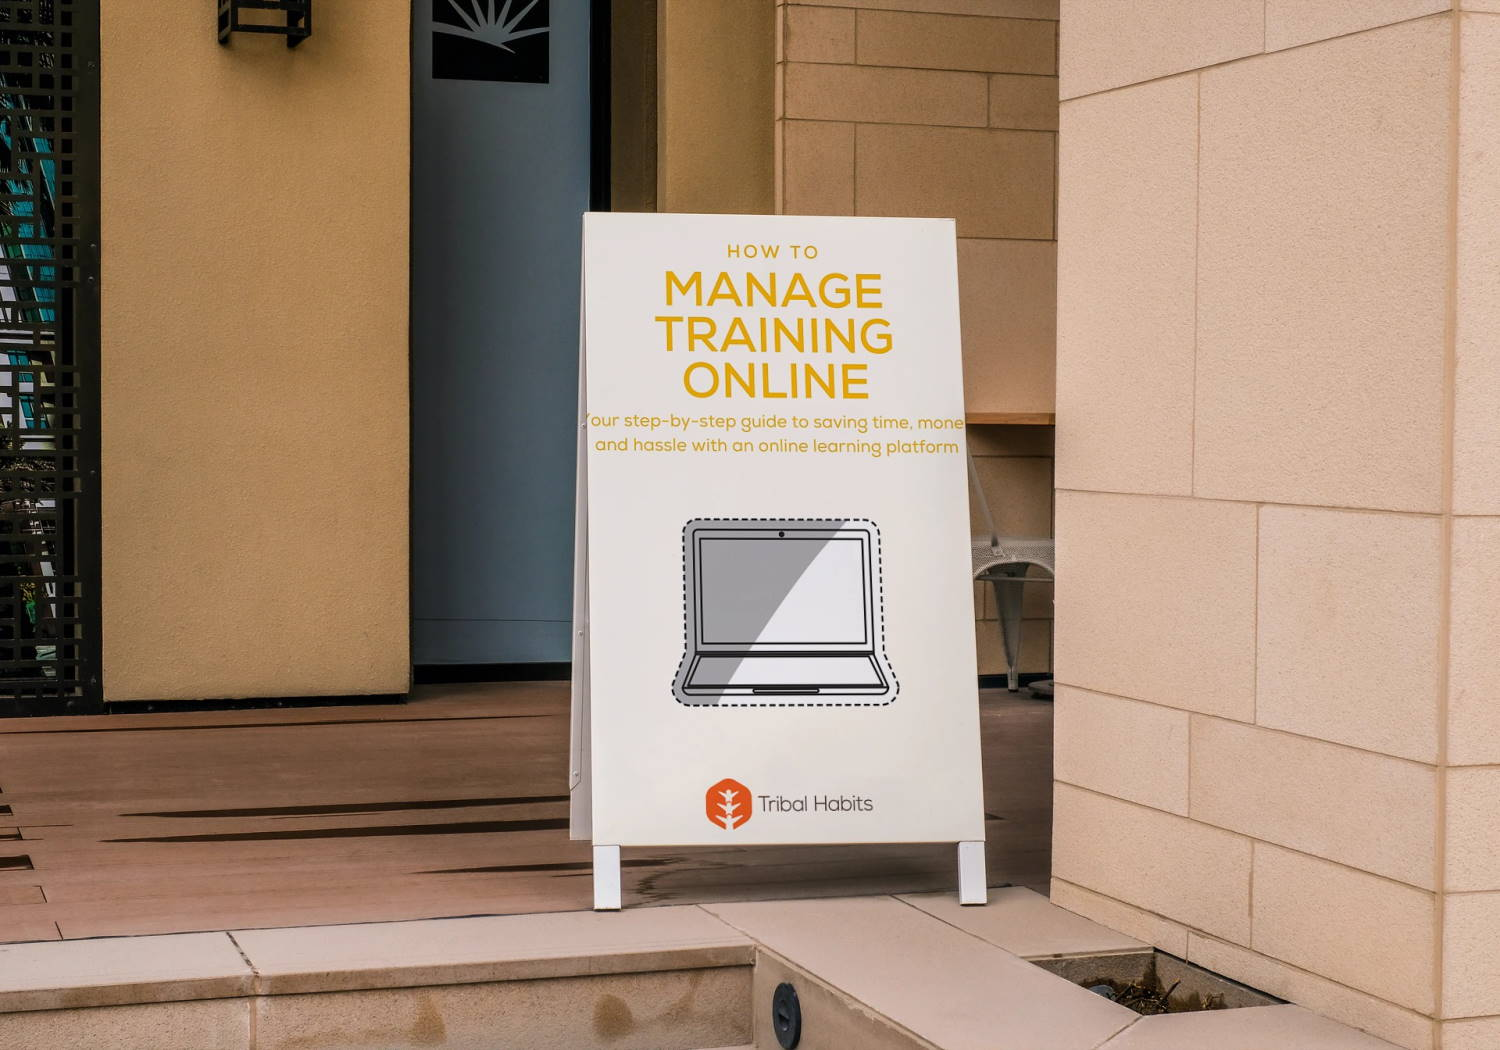 Manage Training Online Guidebook